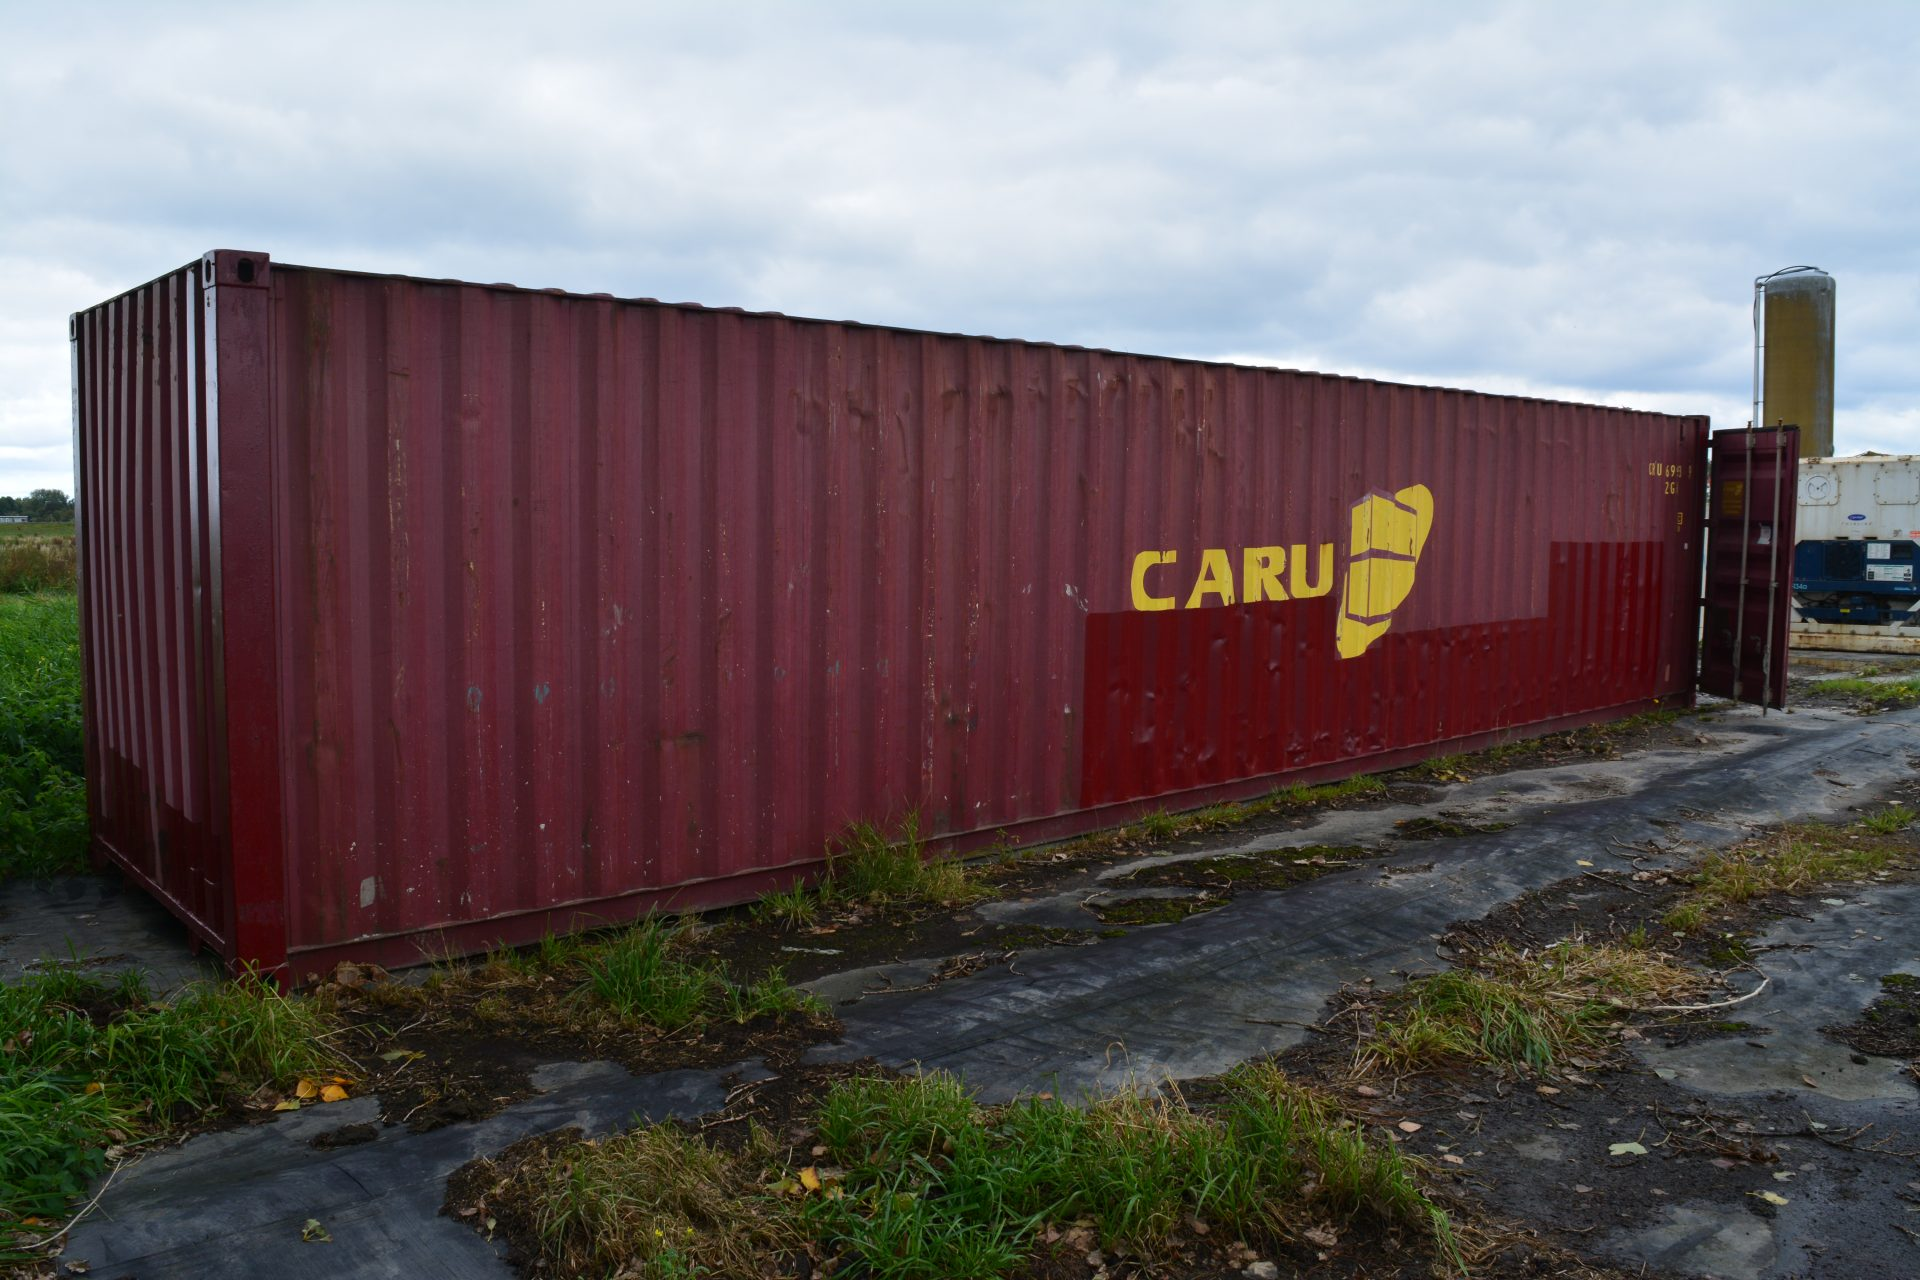 40ft container van Caru Containers